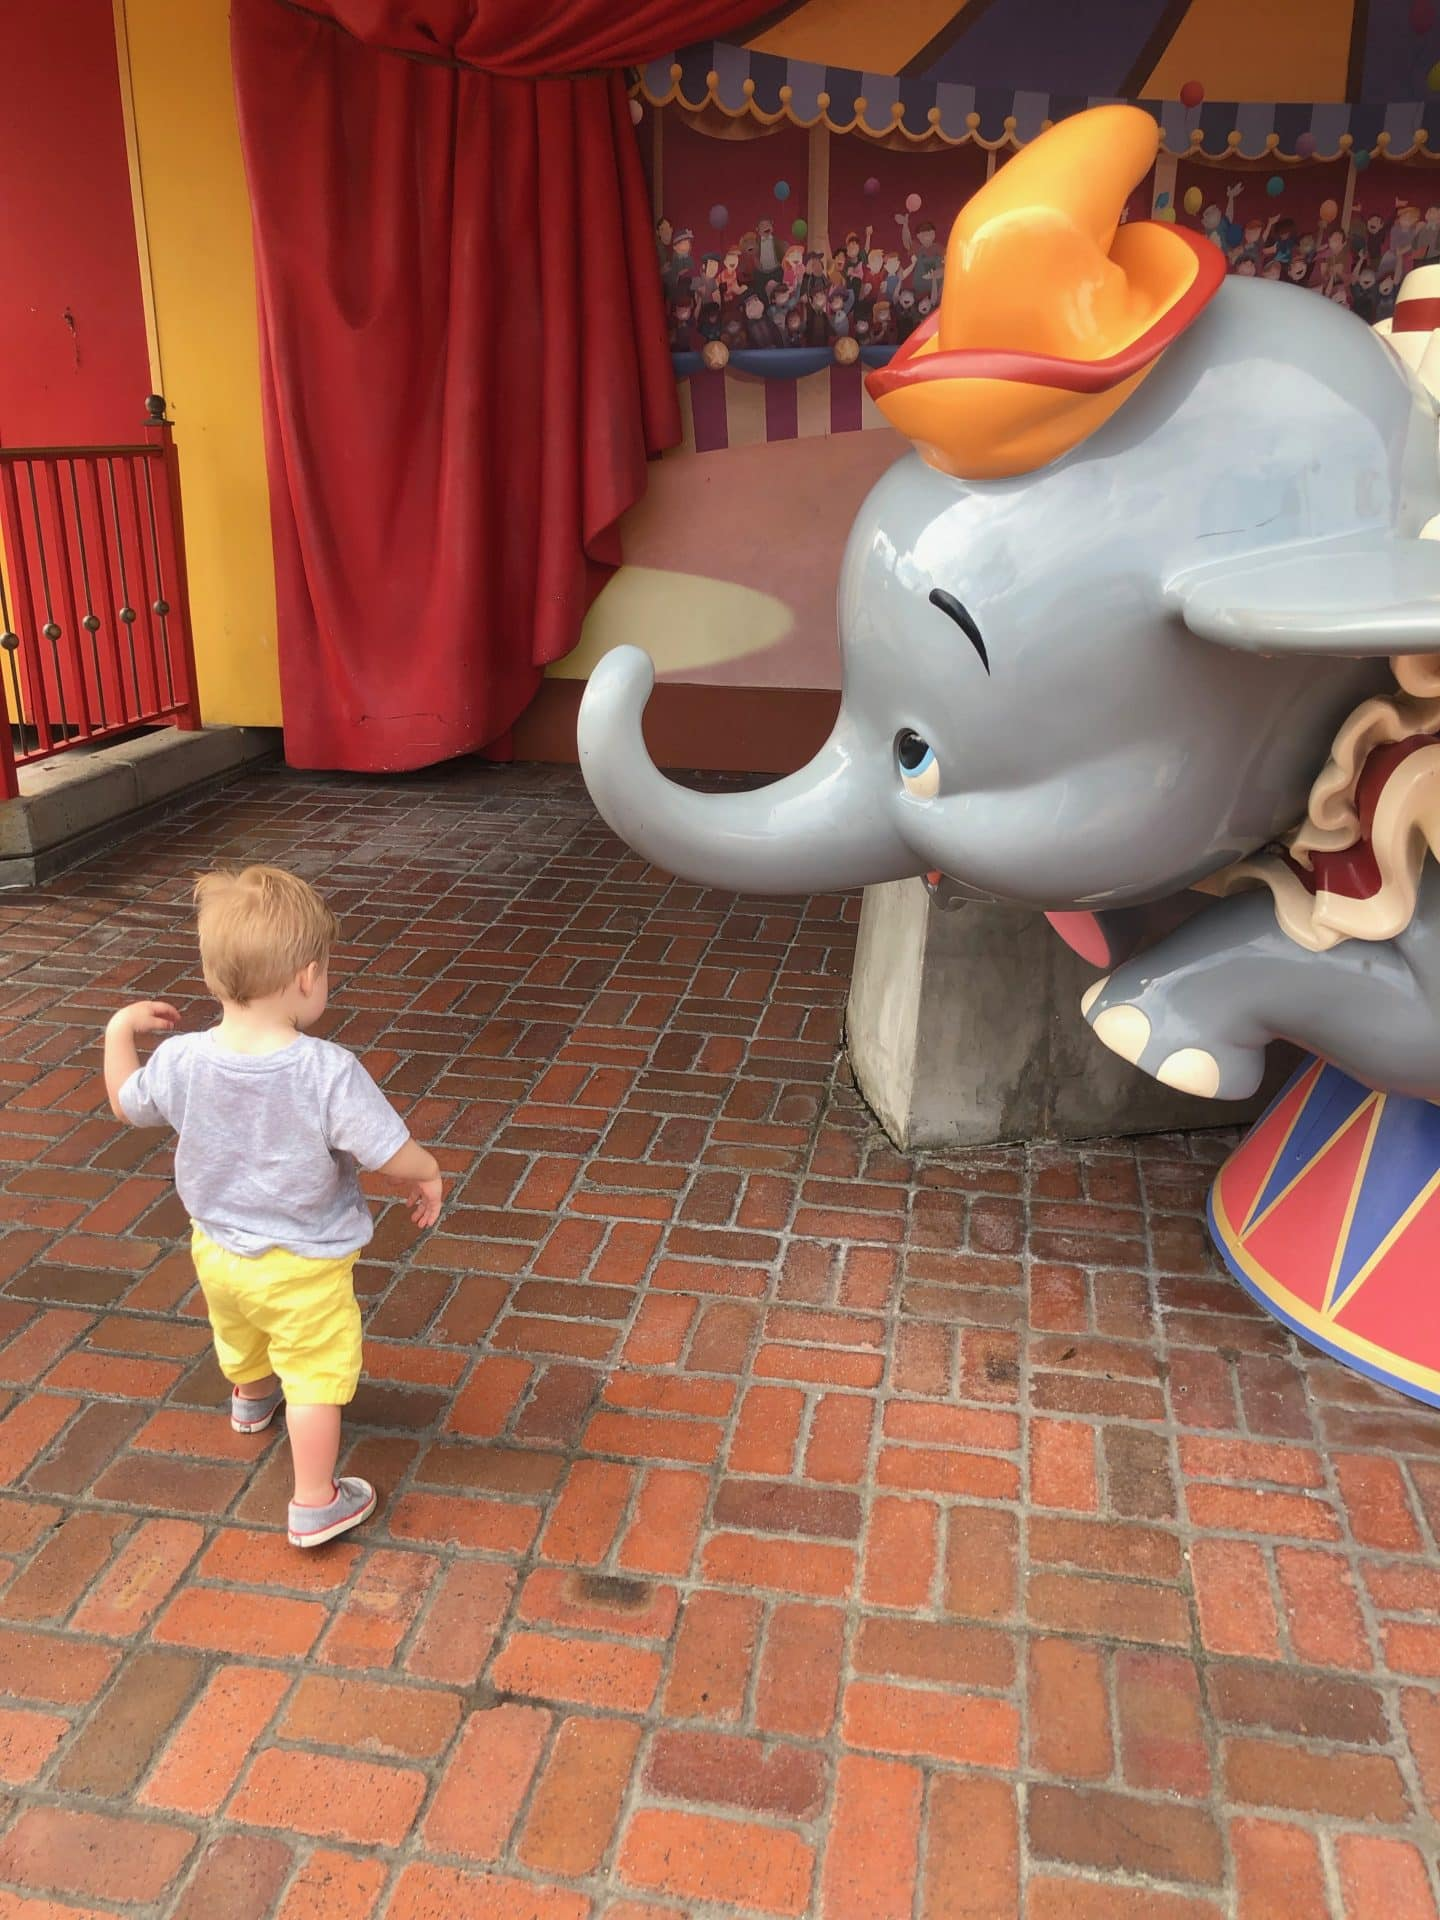 dumbo at magic kingdom fantasyland at Disney World with toddler